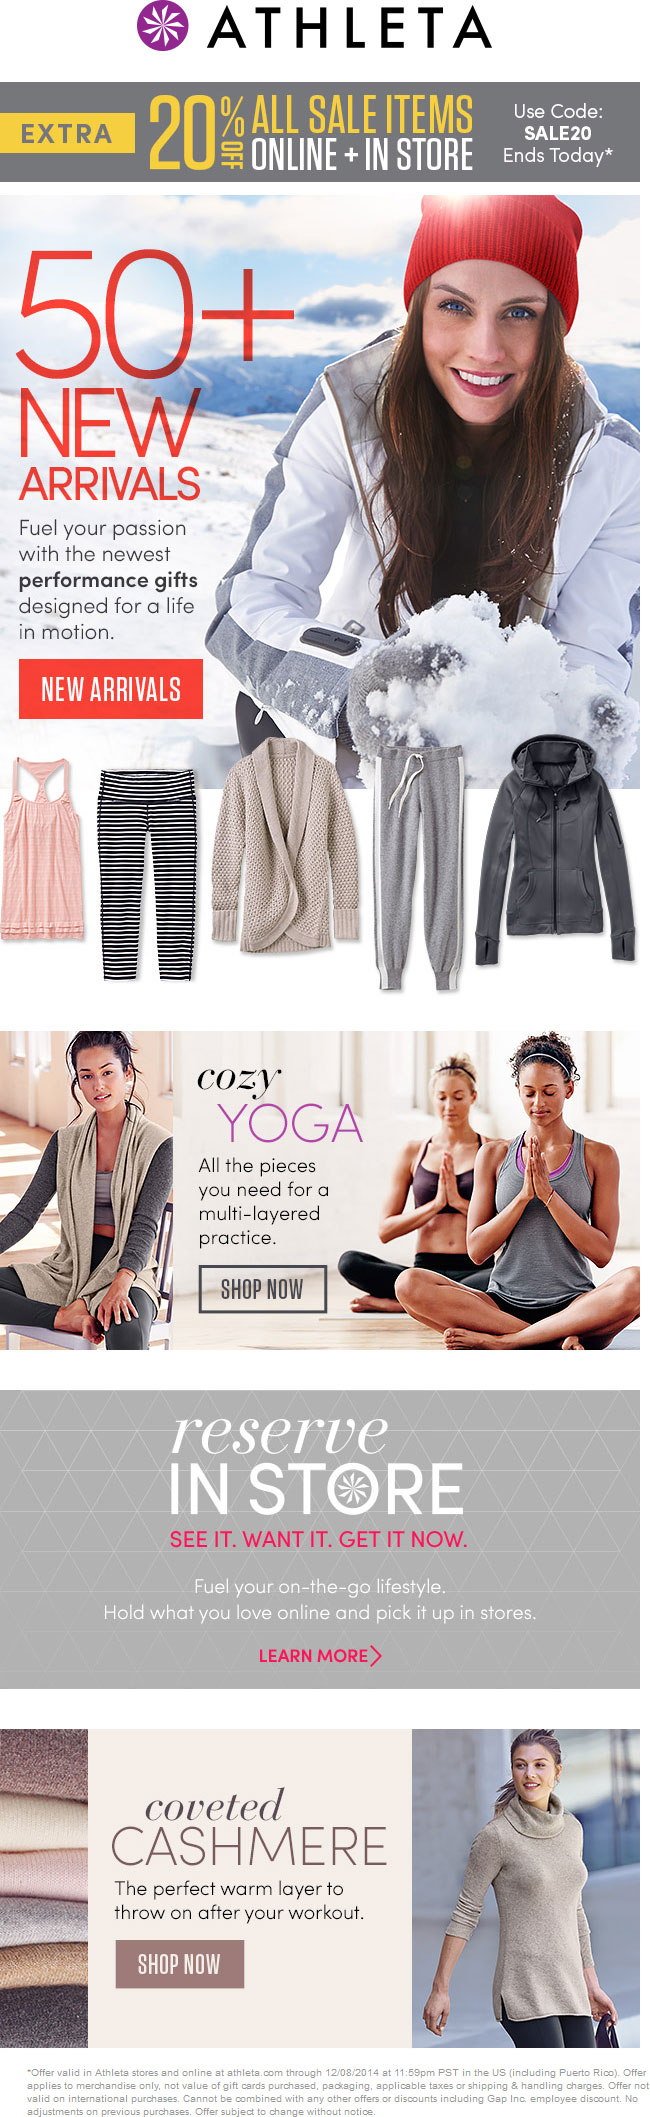 Athleta Coupon March 2017 Extra 20% off sale items today at Athleta, or online via promo code SALE20